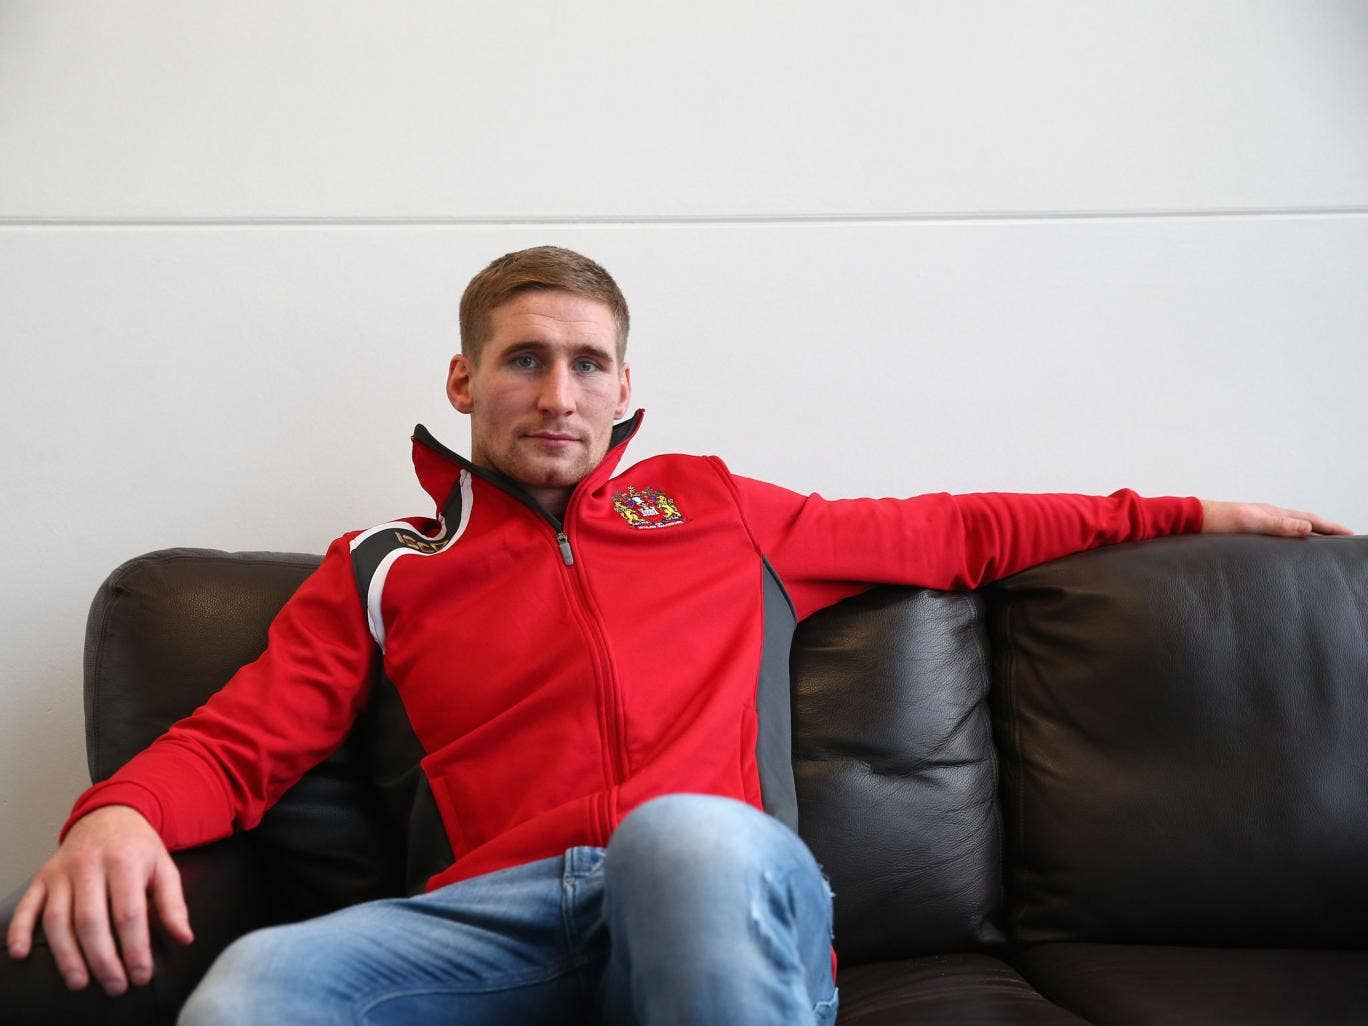 Hot seat: Wigan have become reliant on Sam Tomkins who will be a key figure in Saturday's Challenge Cup final